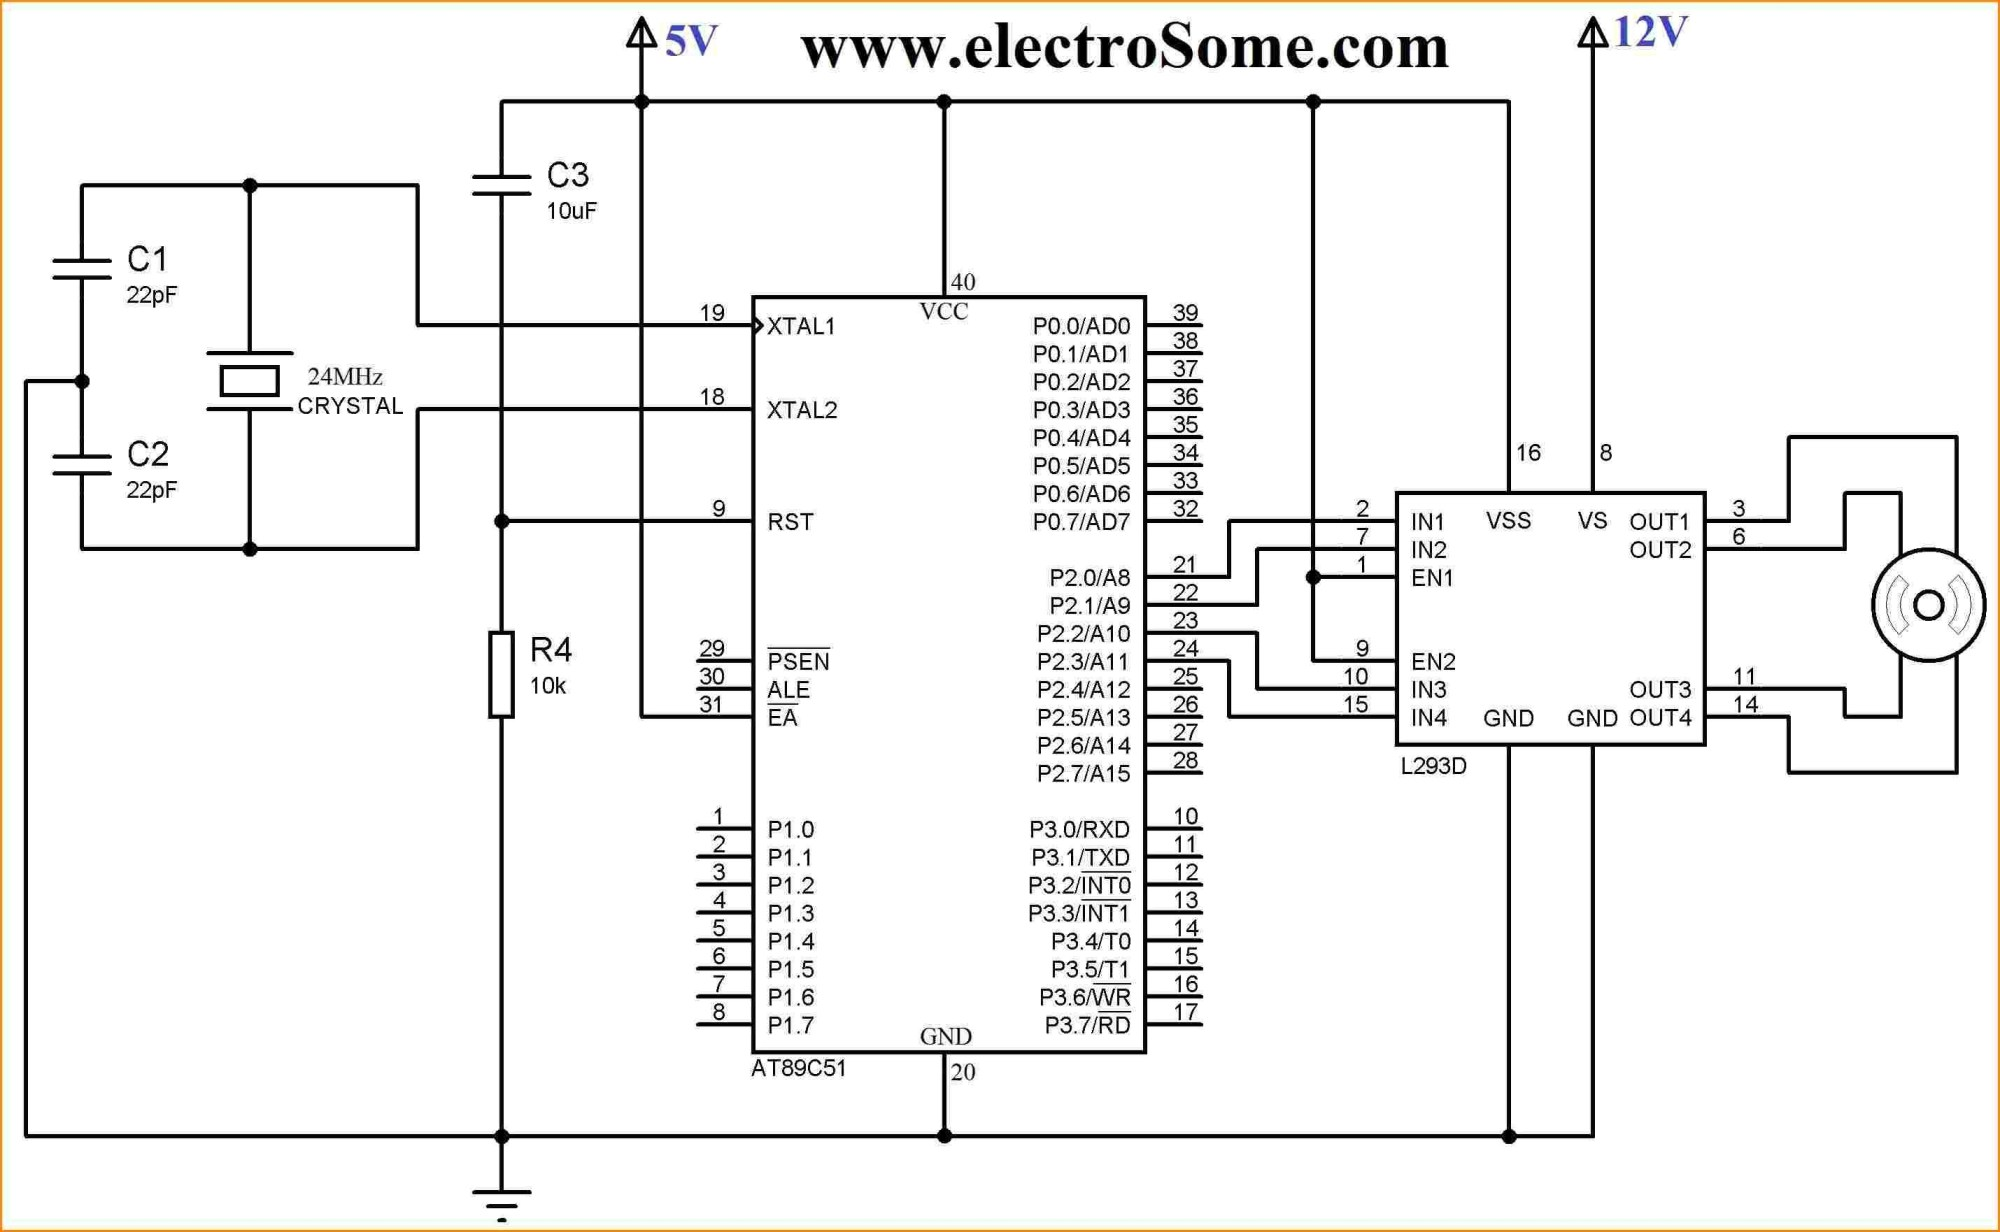 hight resolution of home security system wiring diagram wiring diagram technic burglar alarm system circuit diagram burglar alarm system refer